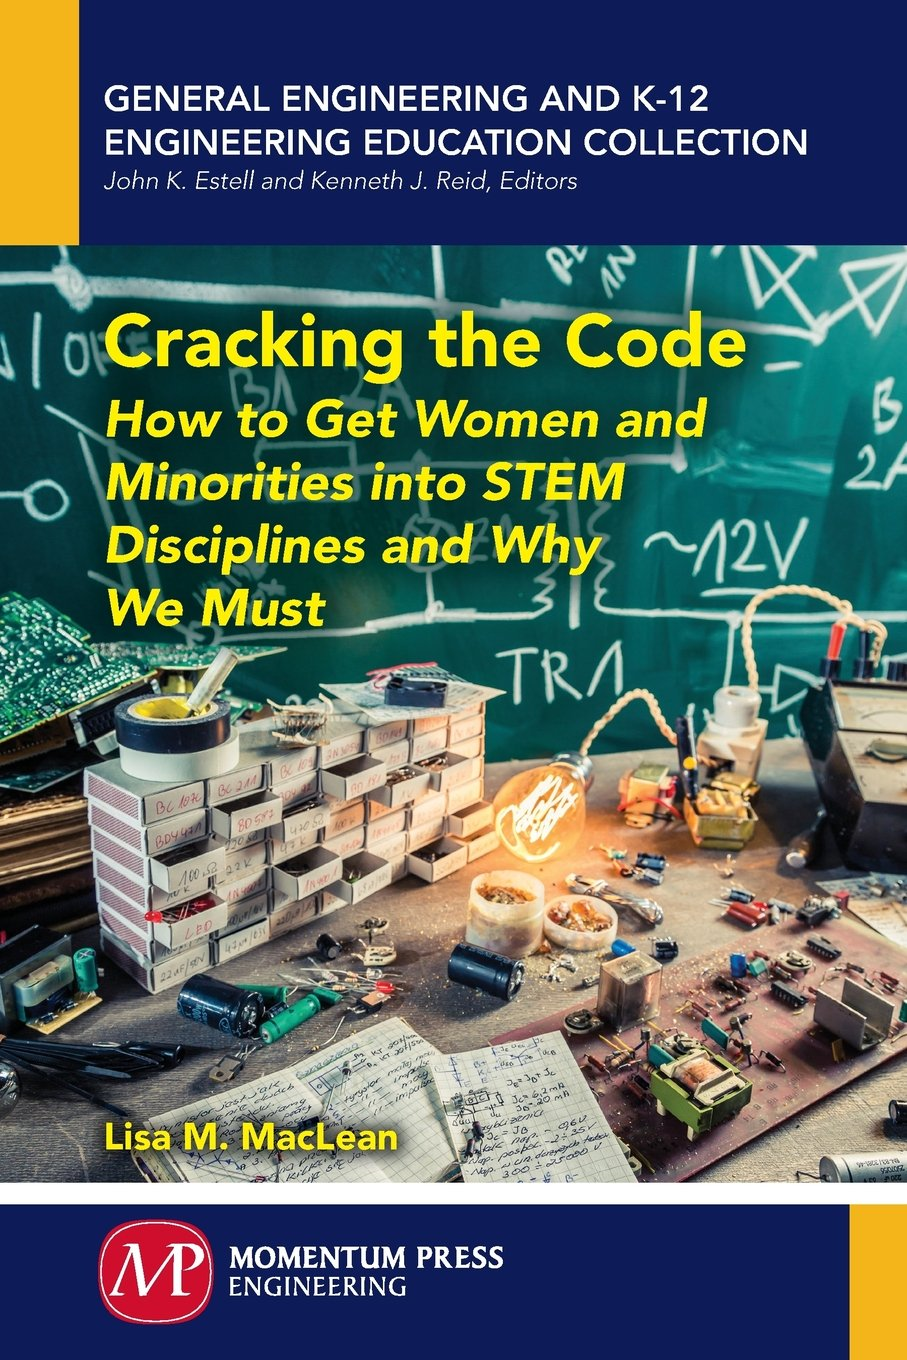 Cracking the Code: How to Get Women and Minorities Into Stem Disciplines and Why We Must pdf